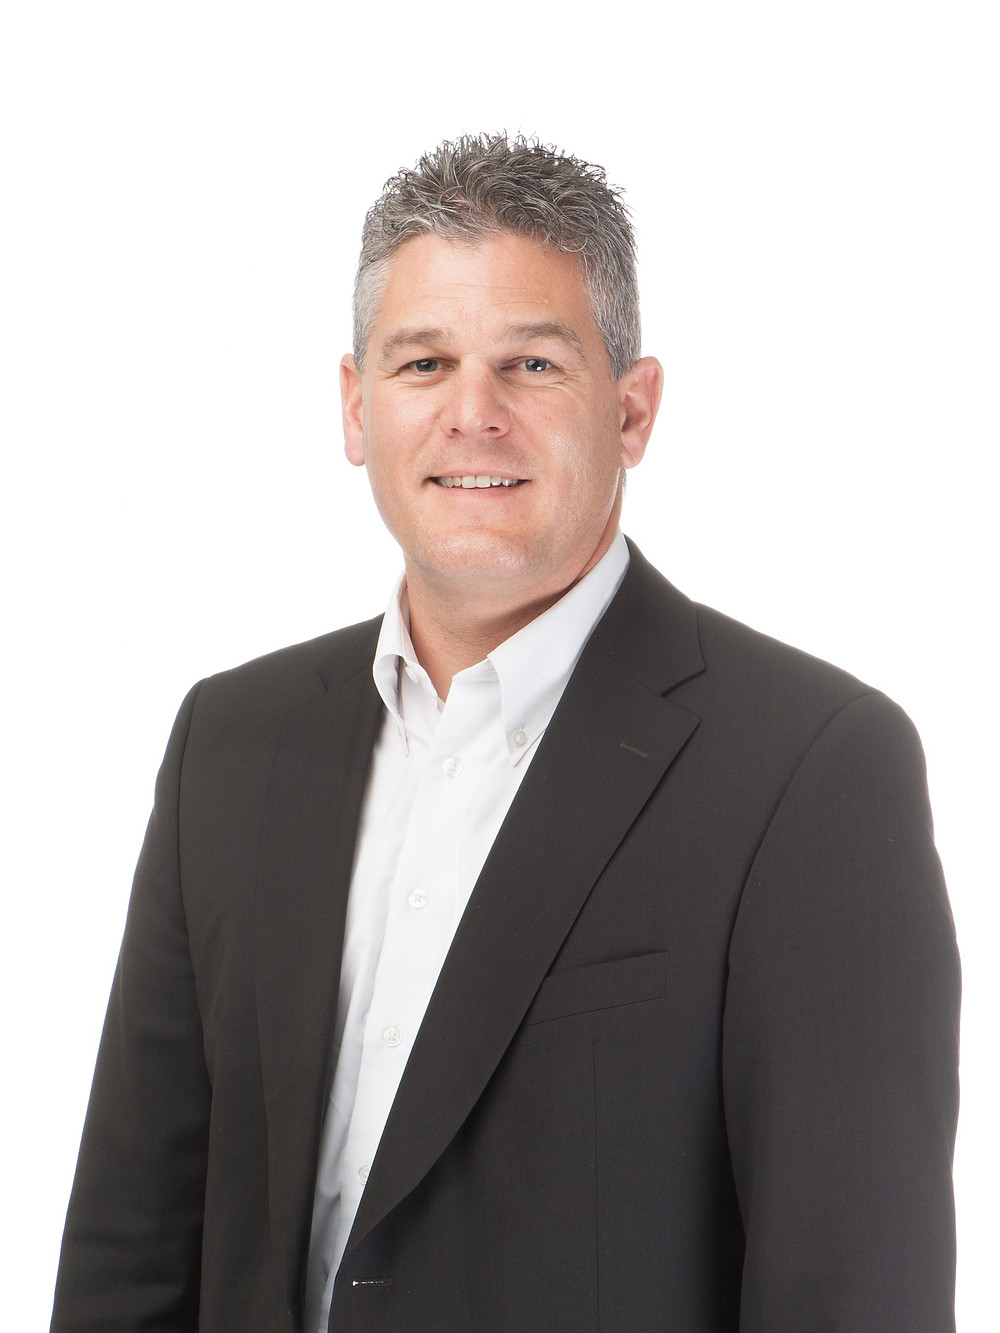 Stephan Frey, Head of Solutions Sales at Alltron